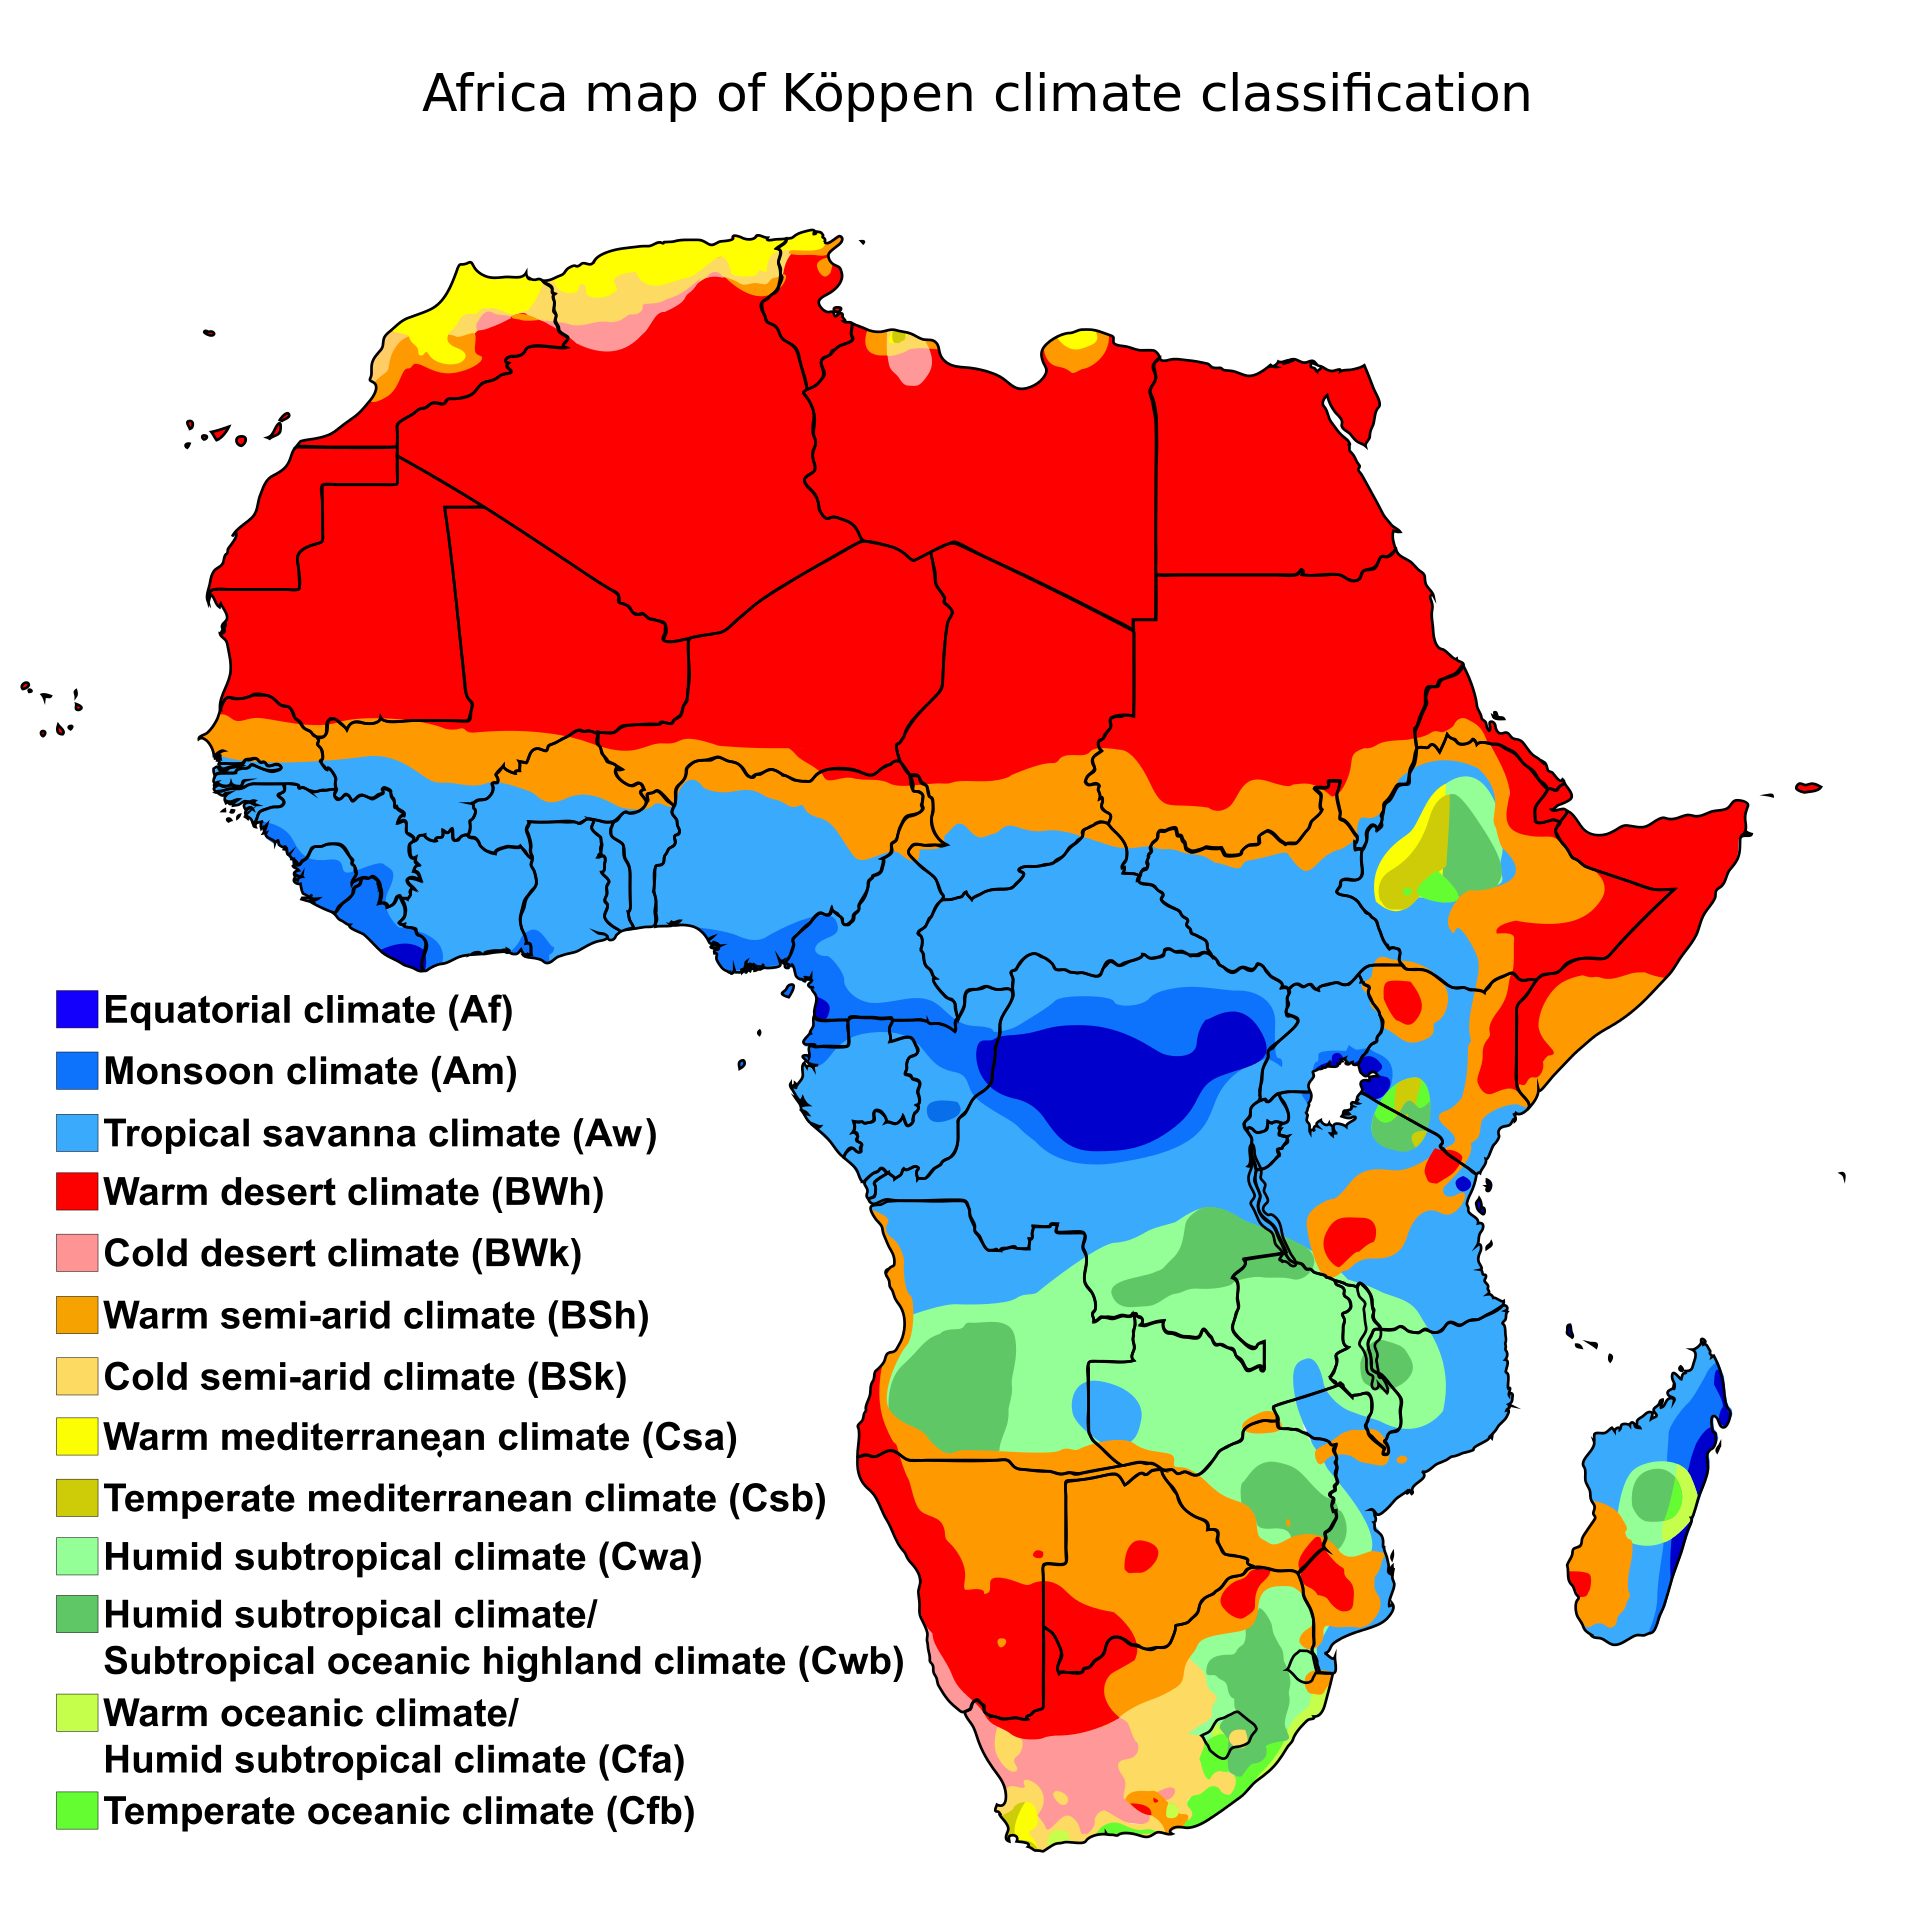 Map Of Africa Climate Zones.Climate Zones Of Africa Showing The Ecological Break Between The